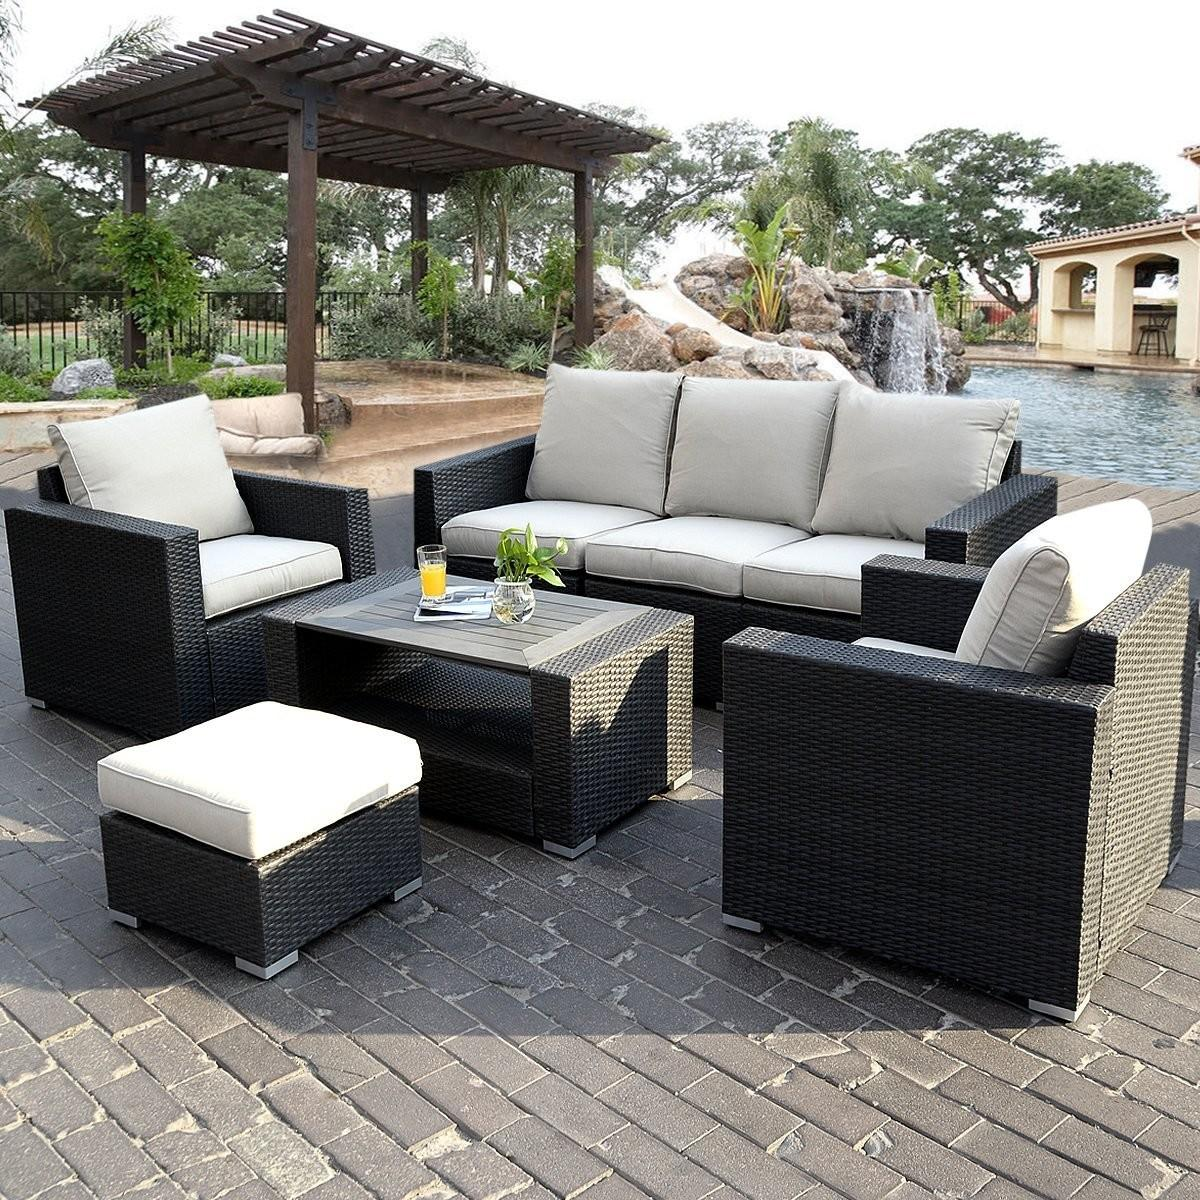 Modern Wicker Patio Furniture Design Decorating Mag